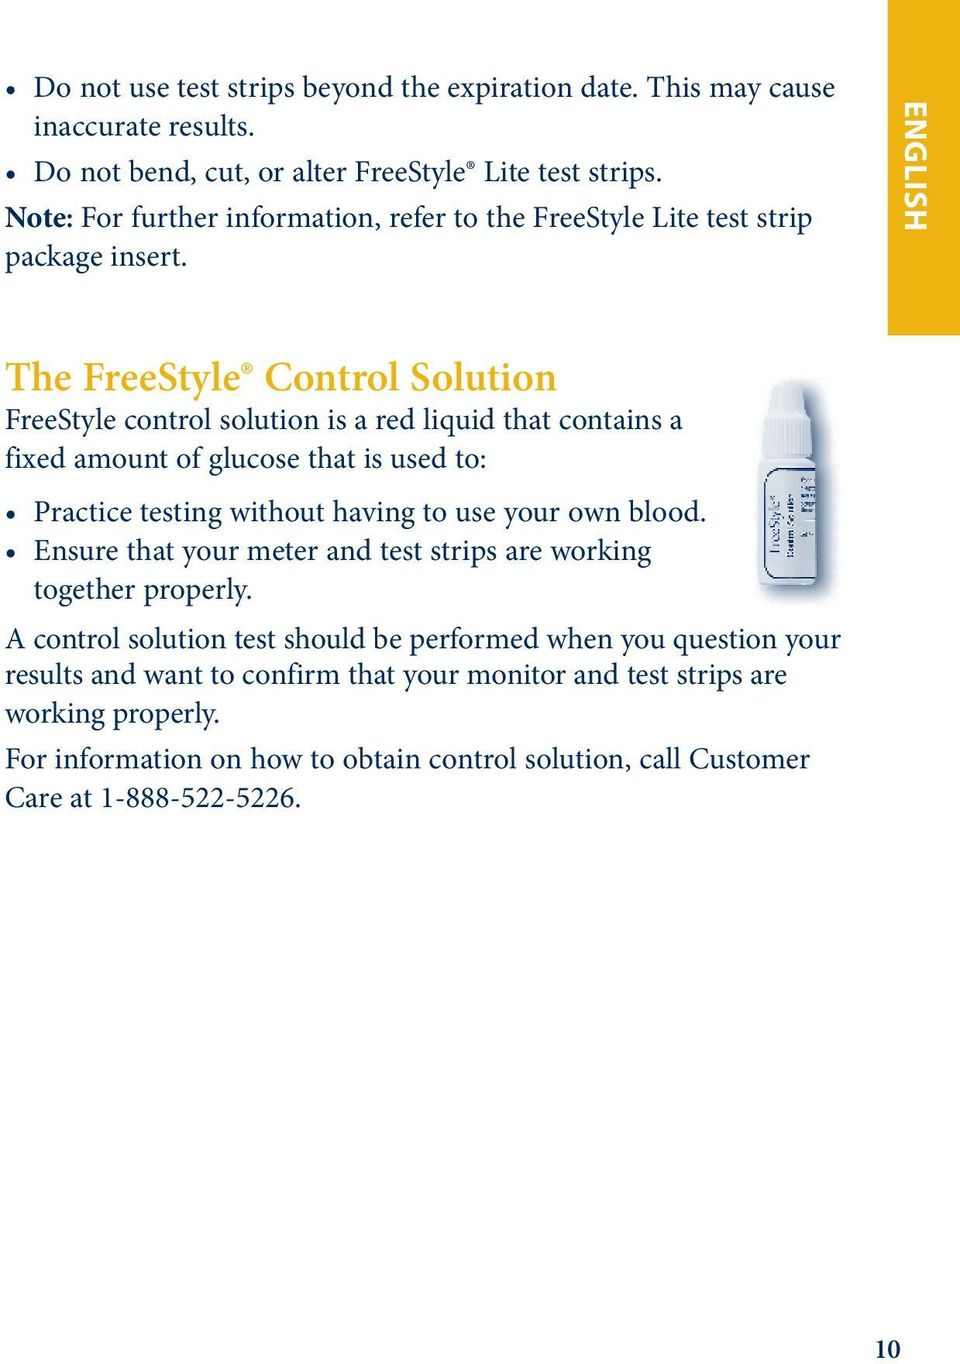 ENGLISH The FreeStyle Control Solution FreeStyle control solution is a red liquid that contains a fixed amount of glucose that is used to: Practice testing without having to use your